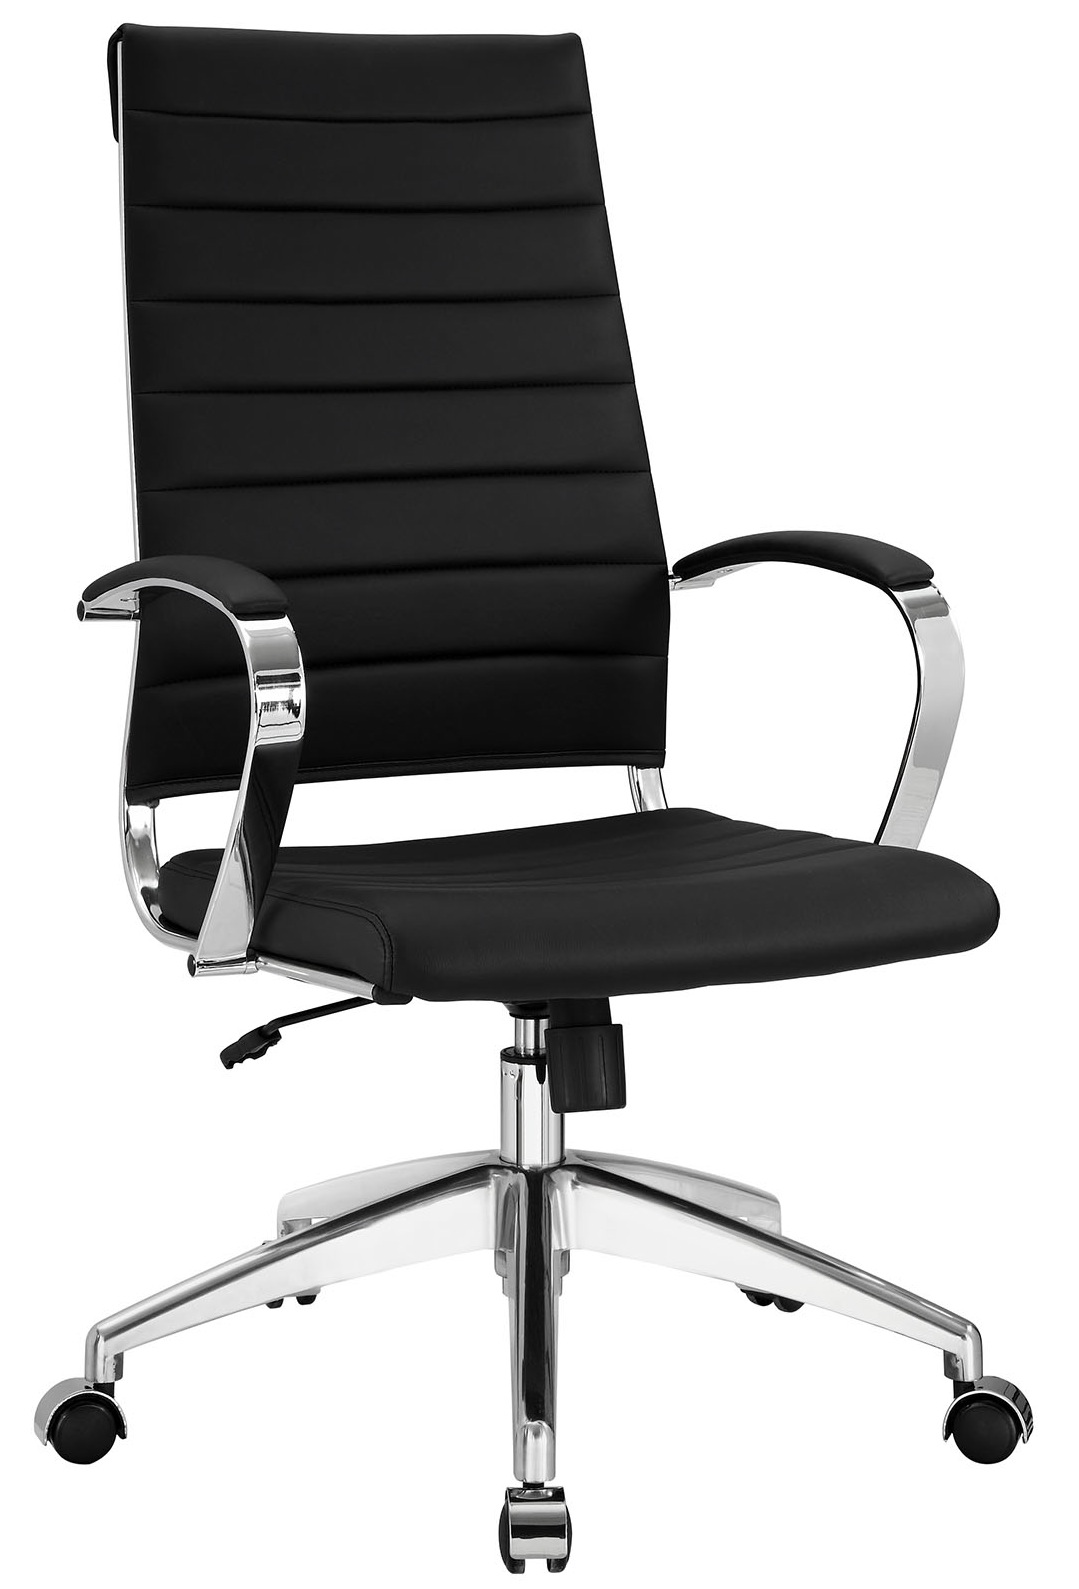 aria-hb-office-chair-black.jpg